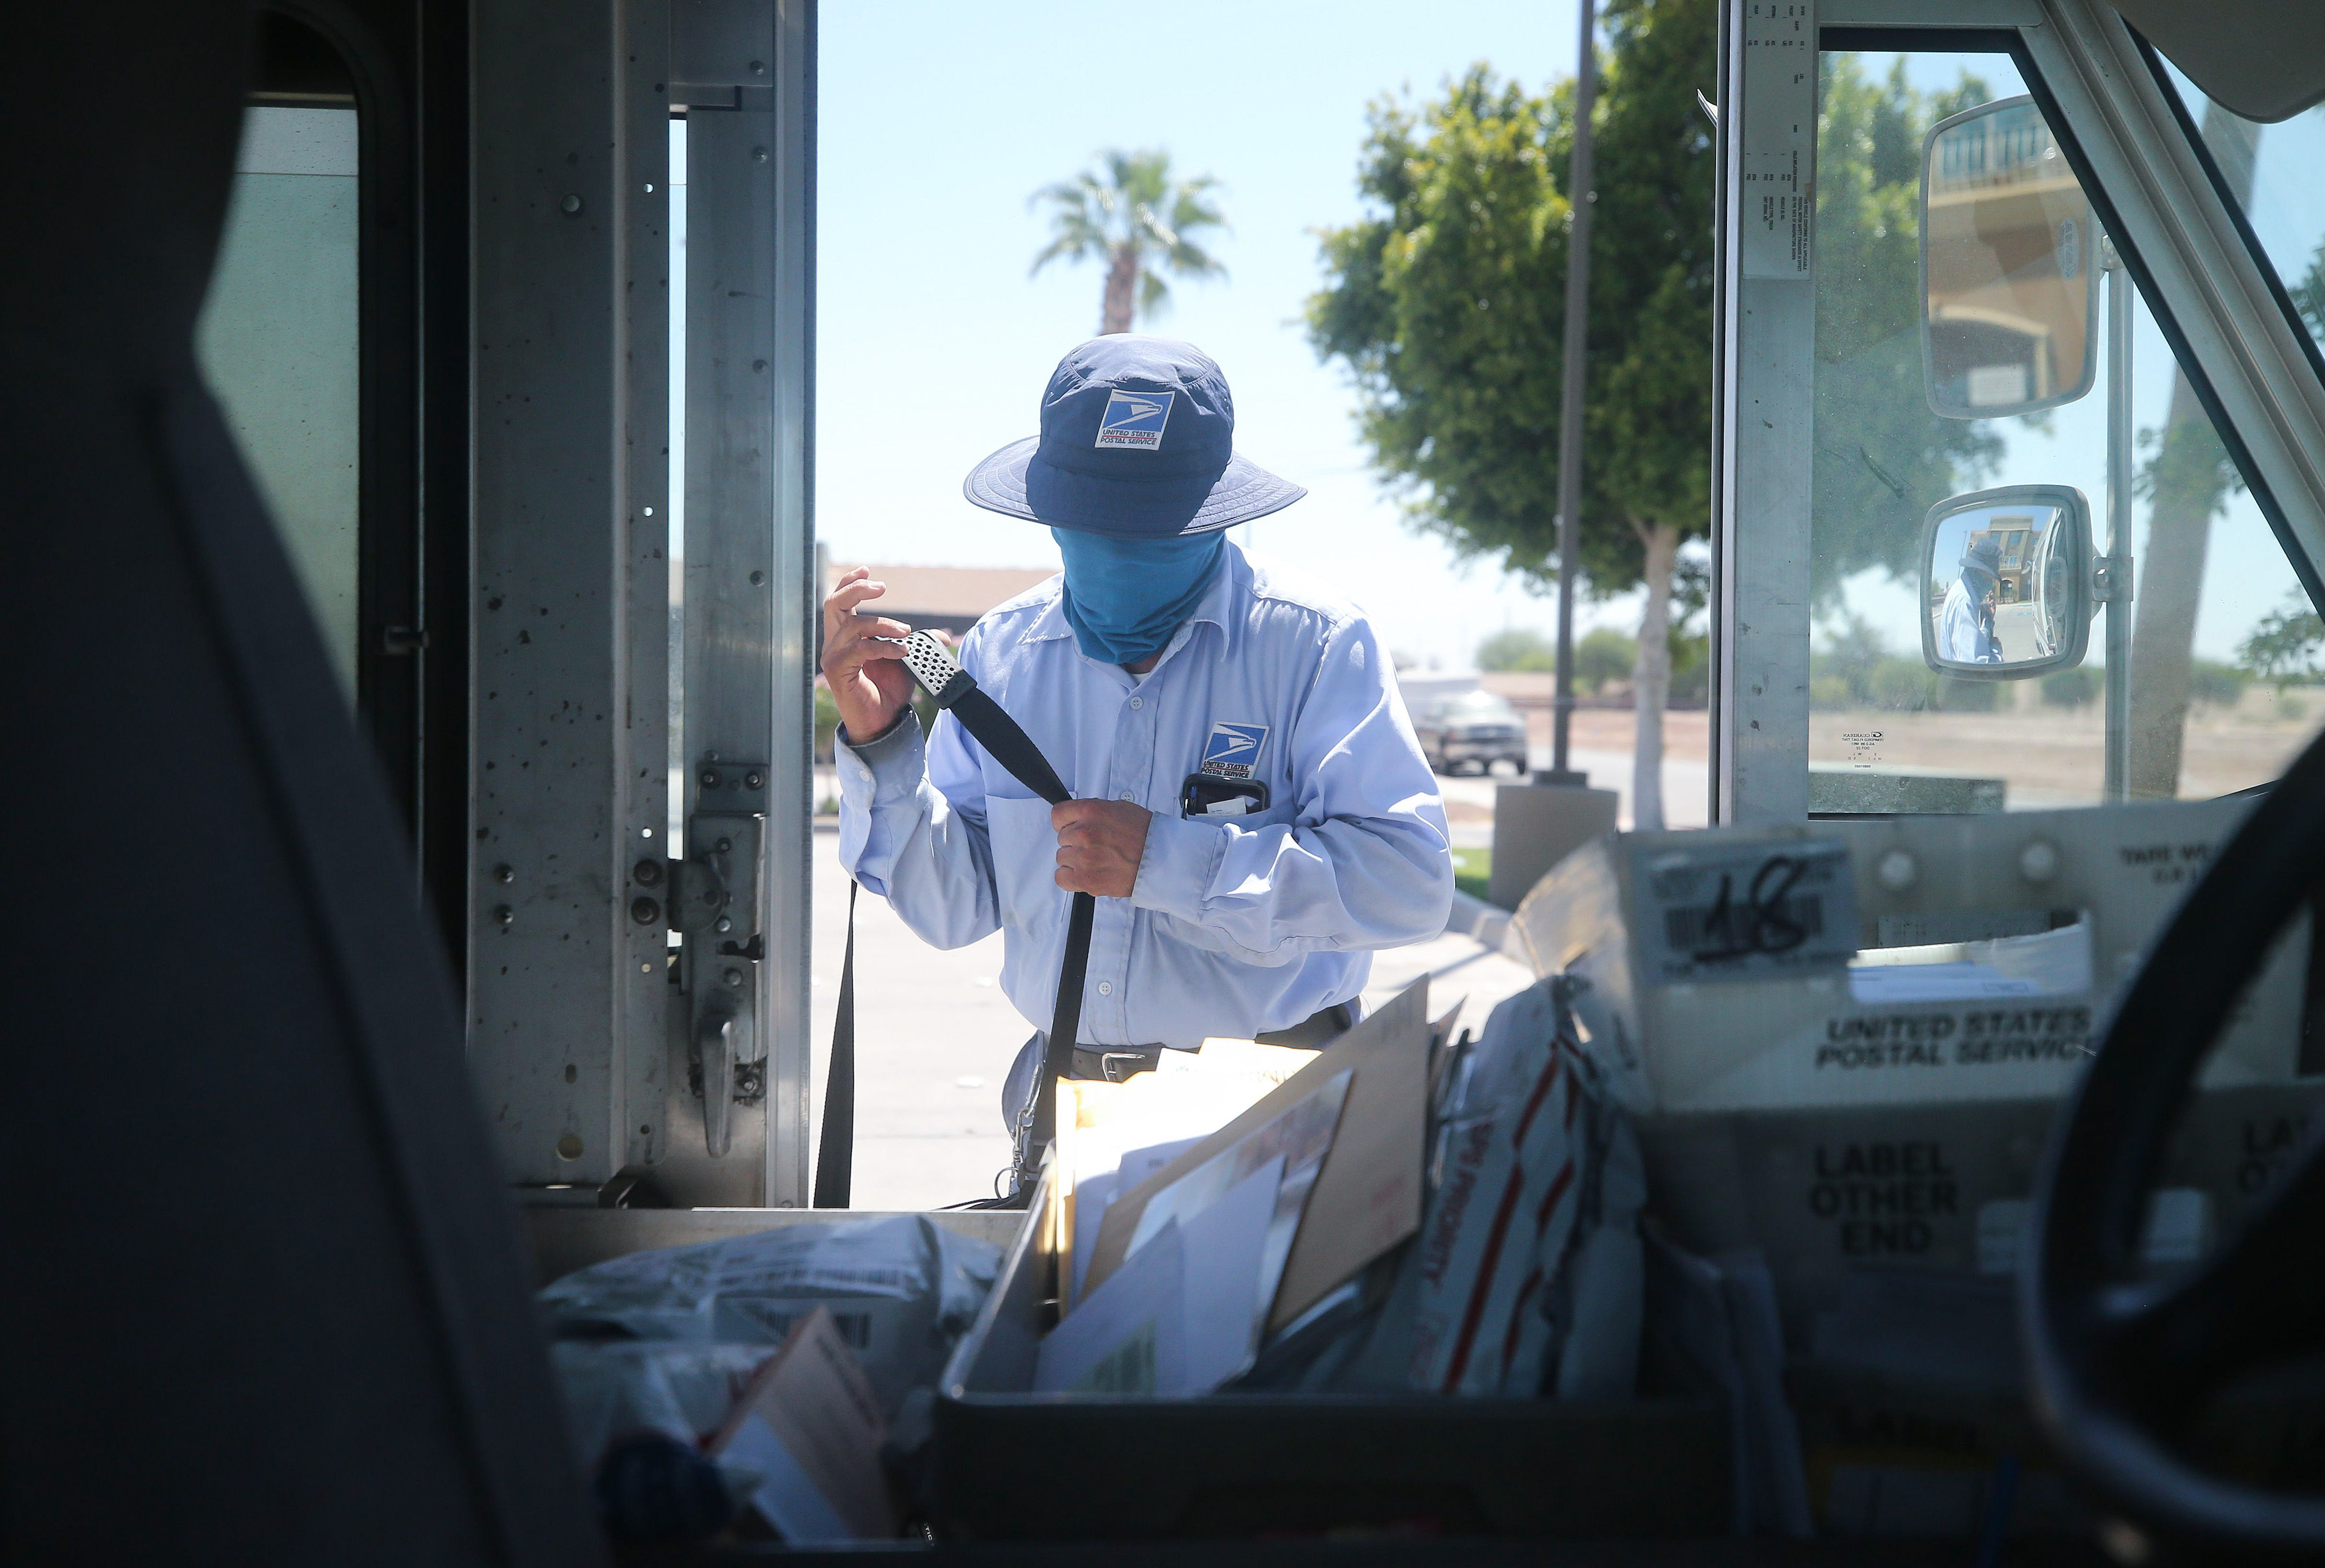 A USPS postal worker wears a face mask amid the coronavirus pandemic in hard-hit Imperial County on July 21, 2020 in El Centro, California. (Mario Tama/Getty Images)